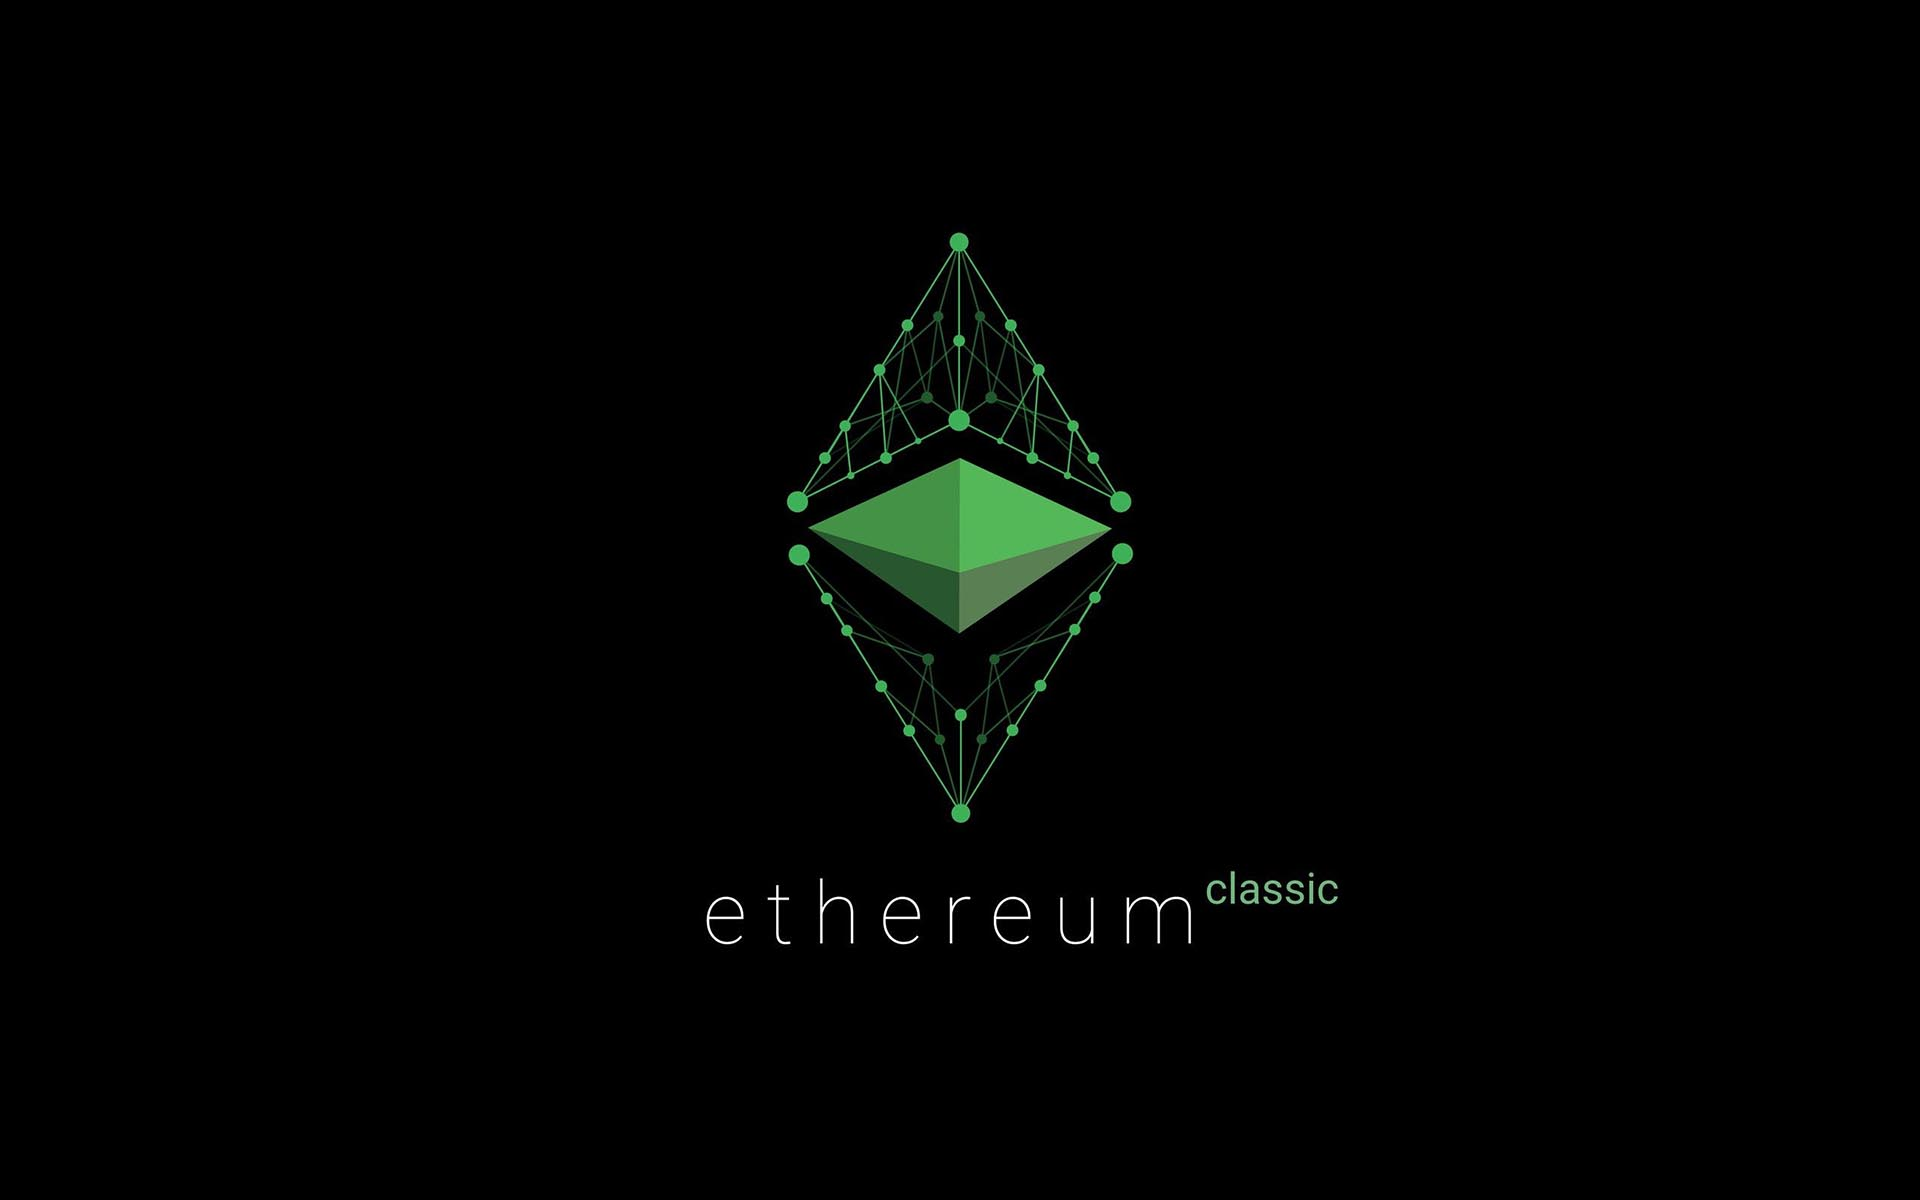 Ethereum Classic Beats All But Bitcoin Cash As Price Tops $18